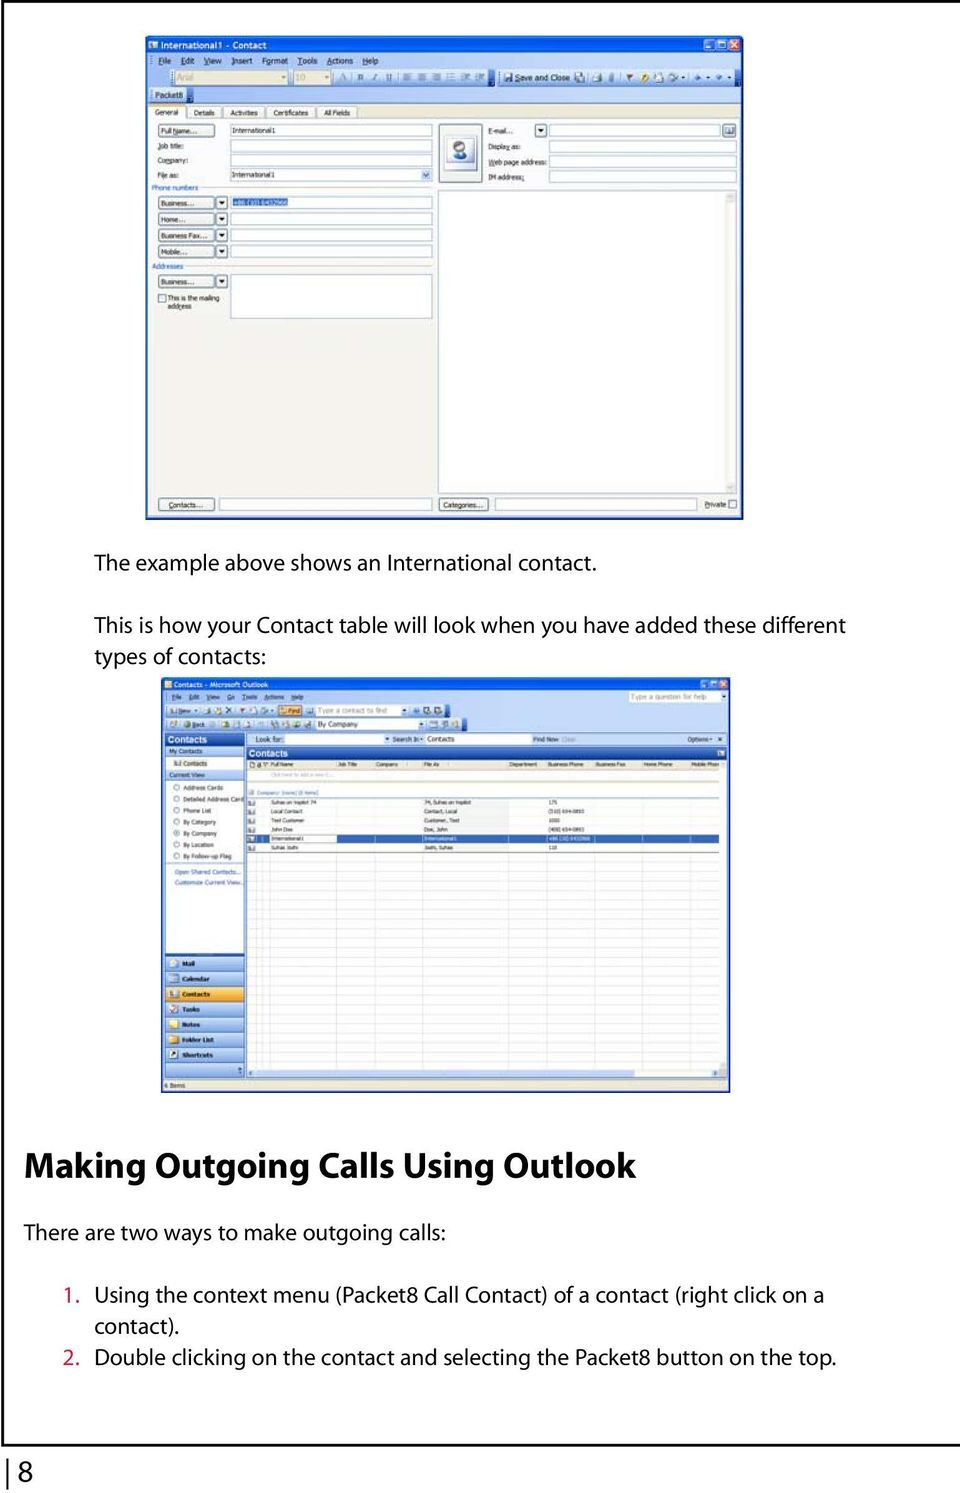 two ways to make outgoing calls: 1 Using the context menu (Packet8 Call Contact) of a contact